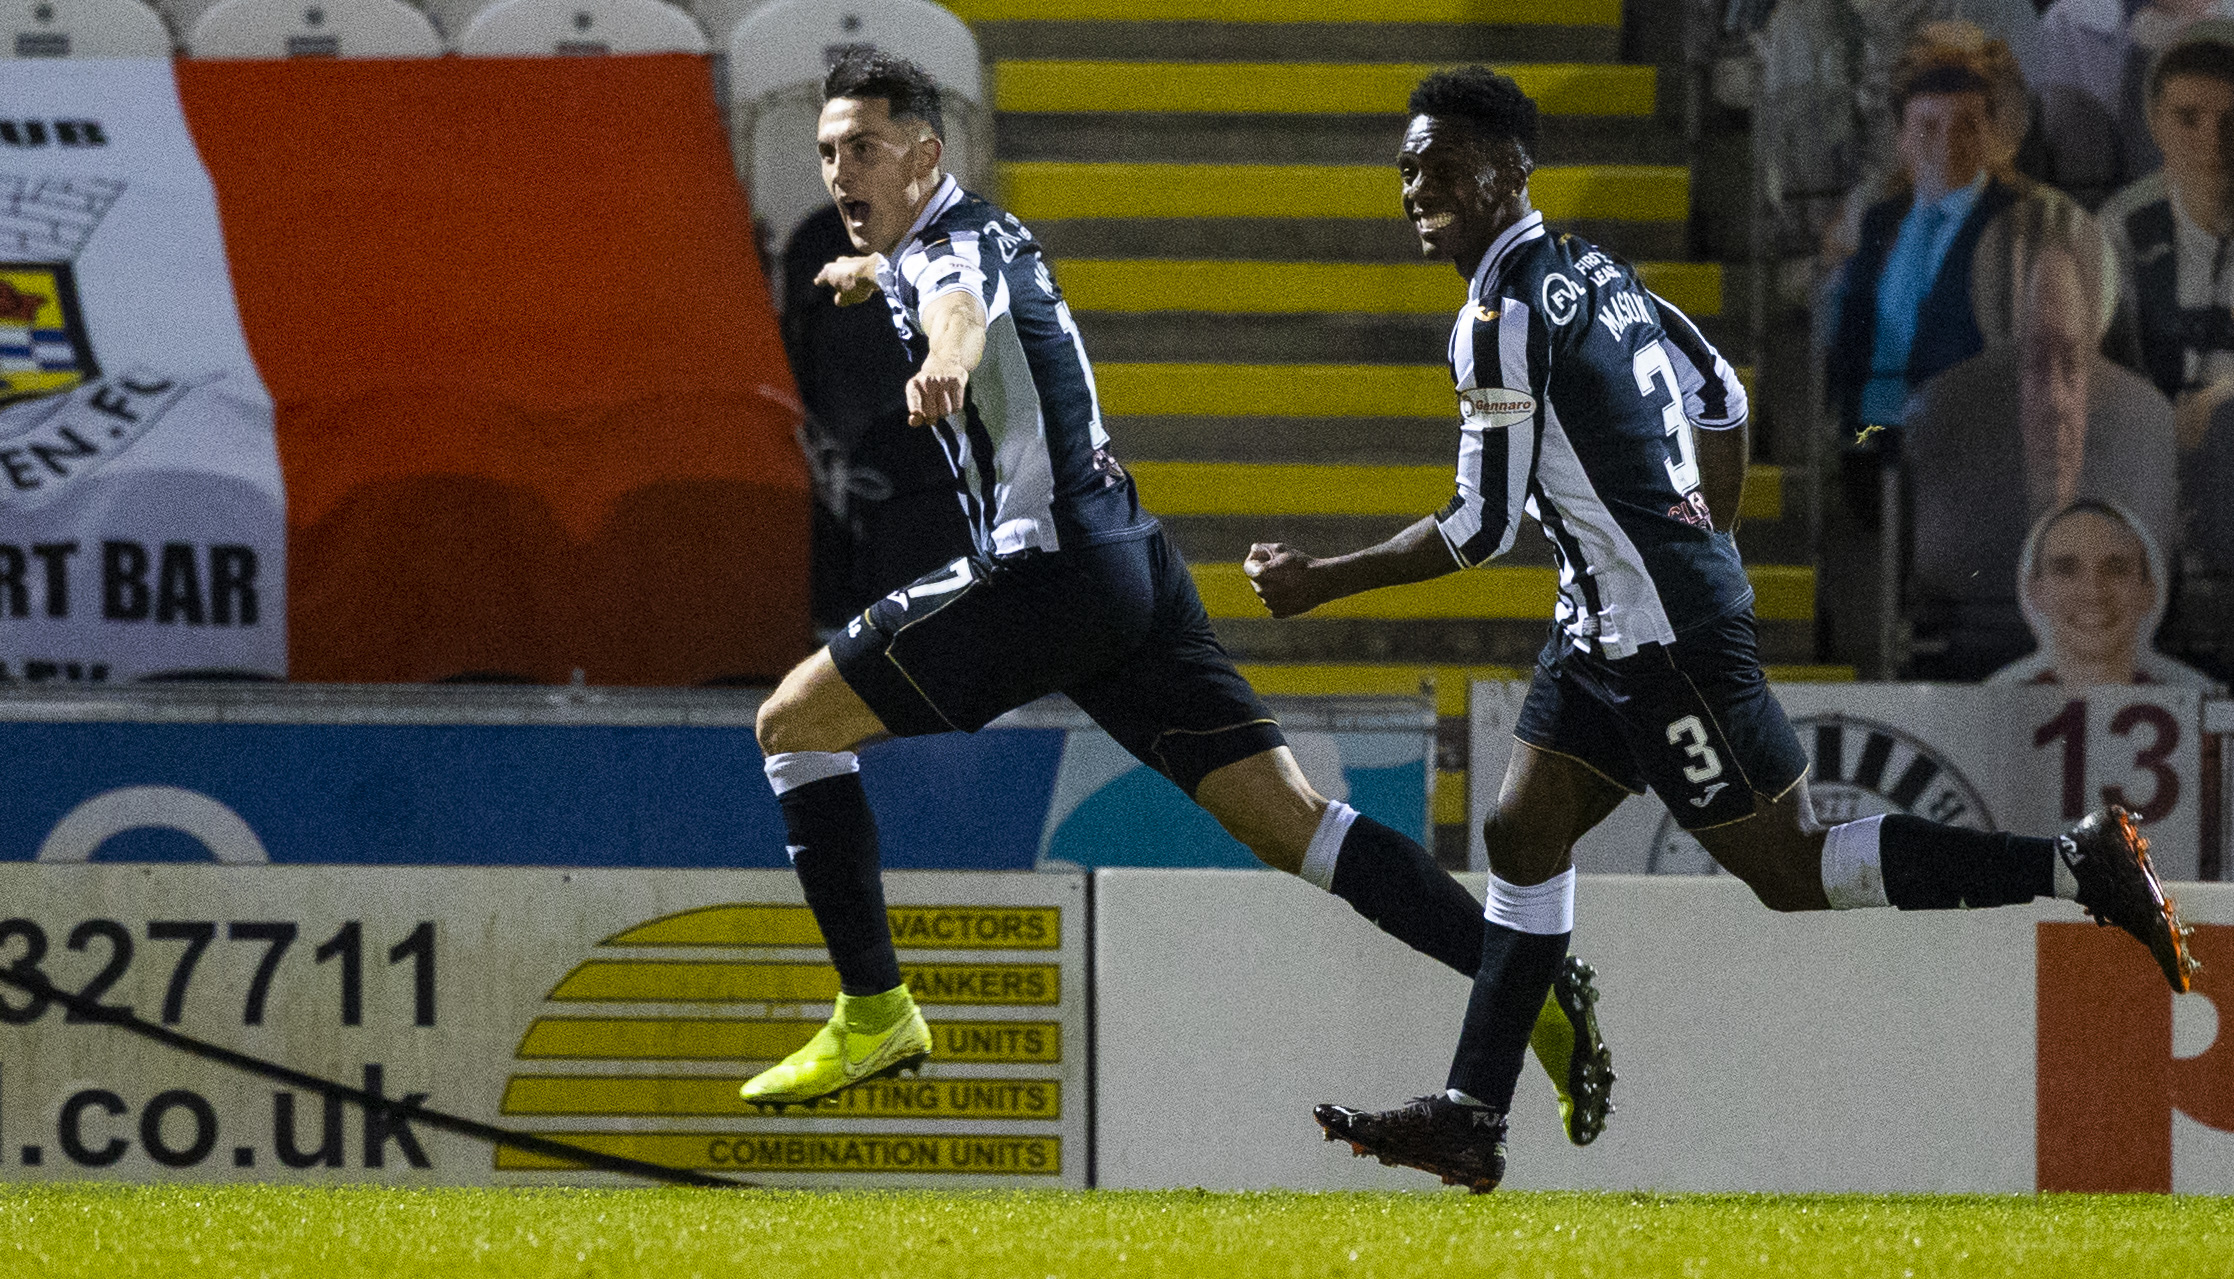 St Mirren's Jamie McGrath ready to step into the unknown ahead of Motherwell clash